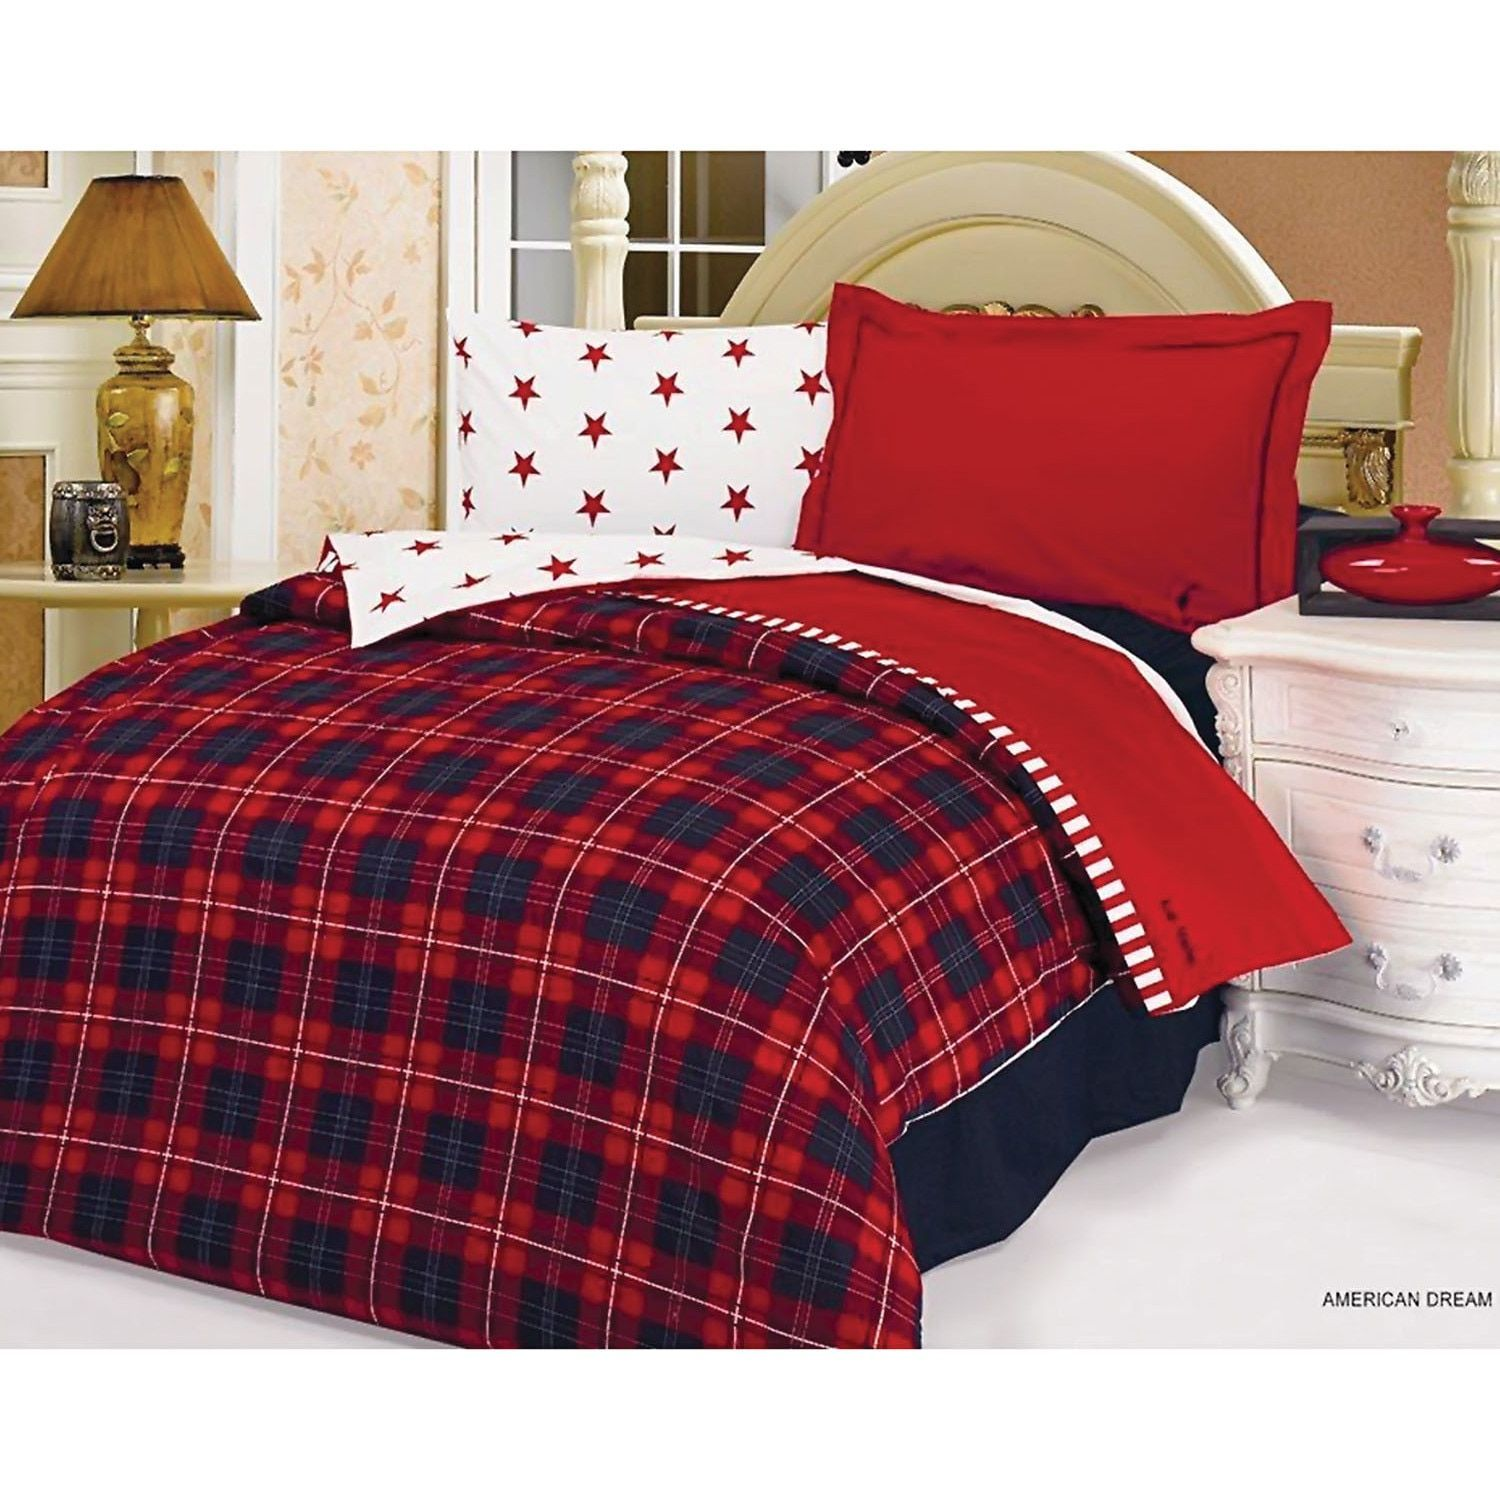 full about amazing cover magnificent plaid duvet red bedding tartan of picture design kids remodel australia ralph size lauren